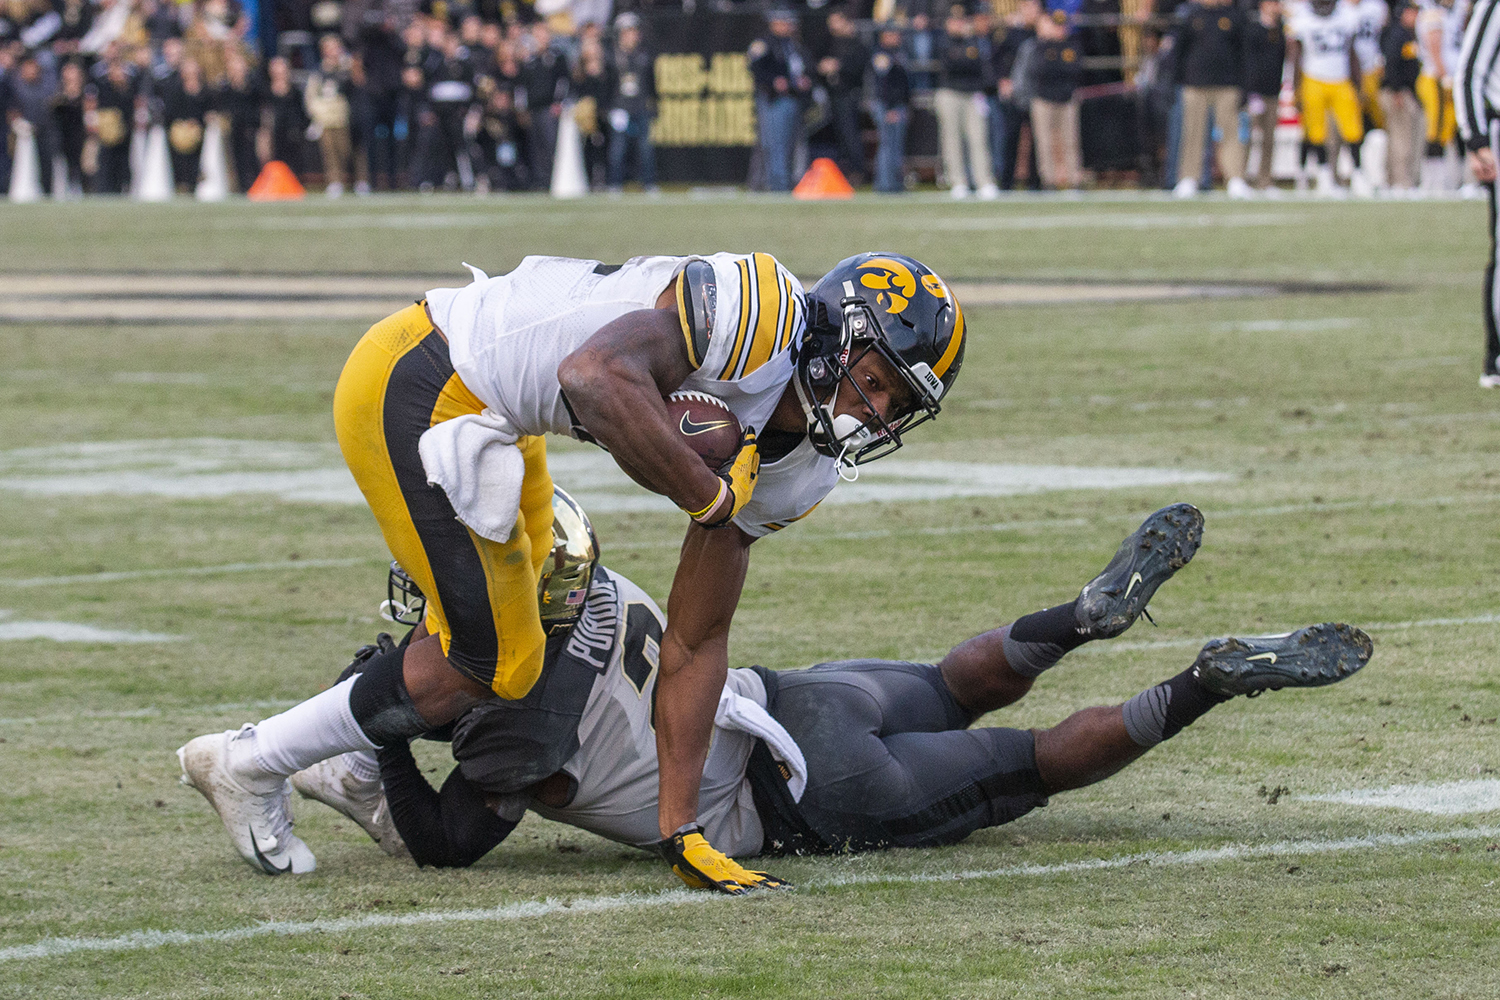 Iowa+wide+receiver+Brandon+Smith+runs+the+ball+during+the+Iowa%2FPurdue+game+at+Ross-Ade+Stadium+in+West+Lafayette%2C+Ind.+on+Saturday%2C+November+3%2C+2018.+The+Boilermakers+defeated+the+Hawkeyes+38-36.+